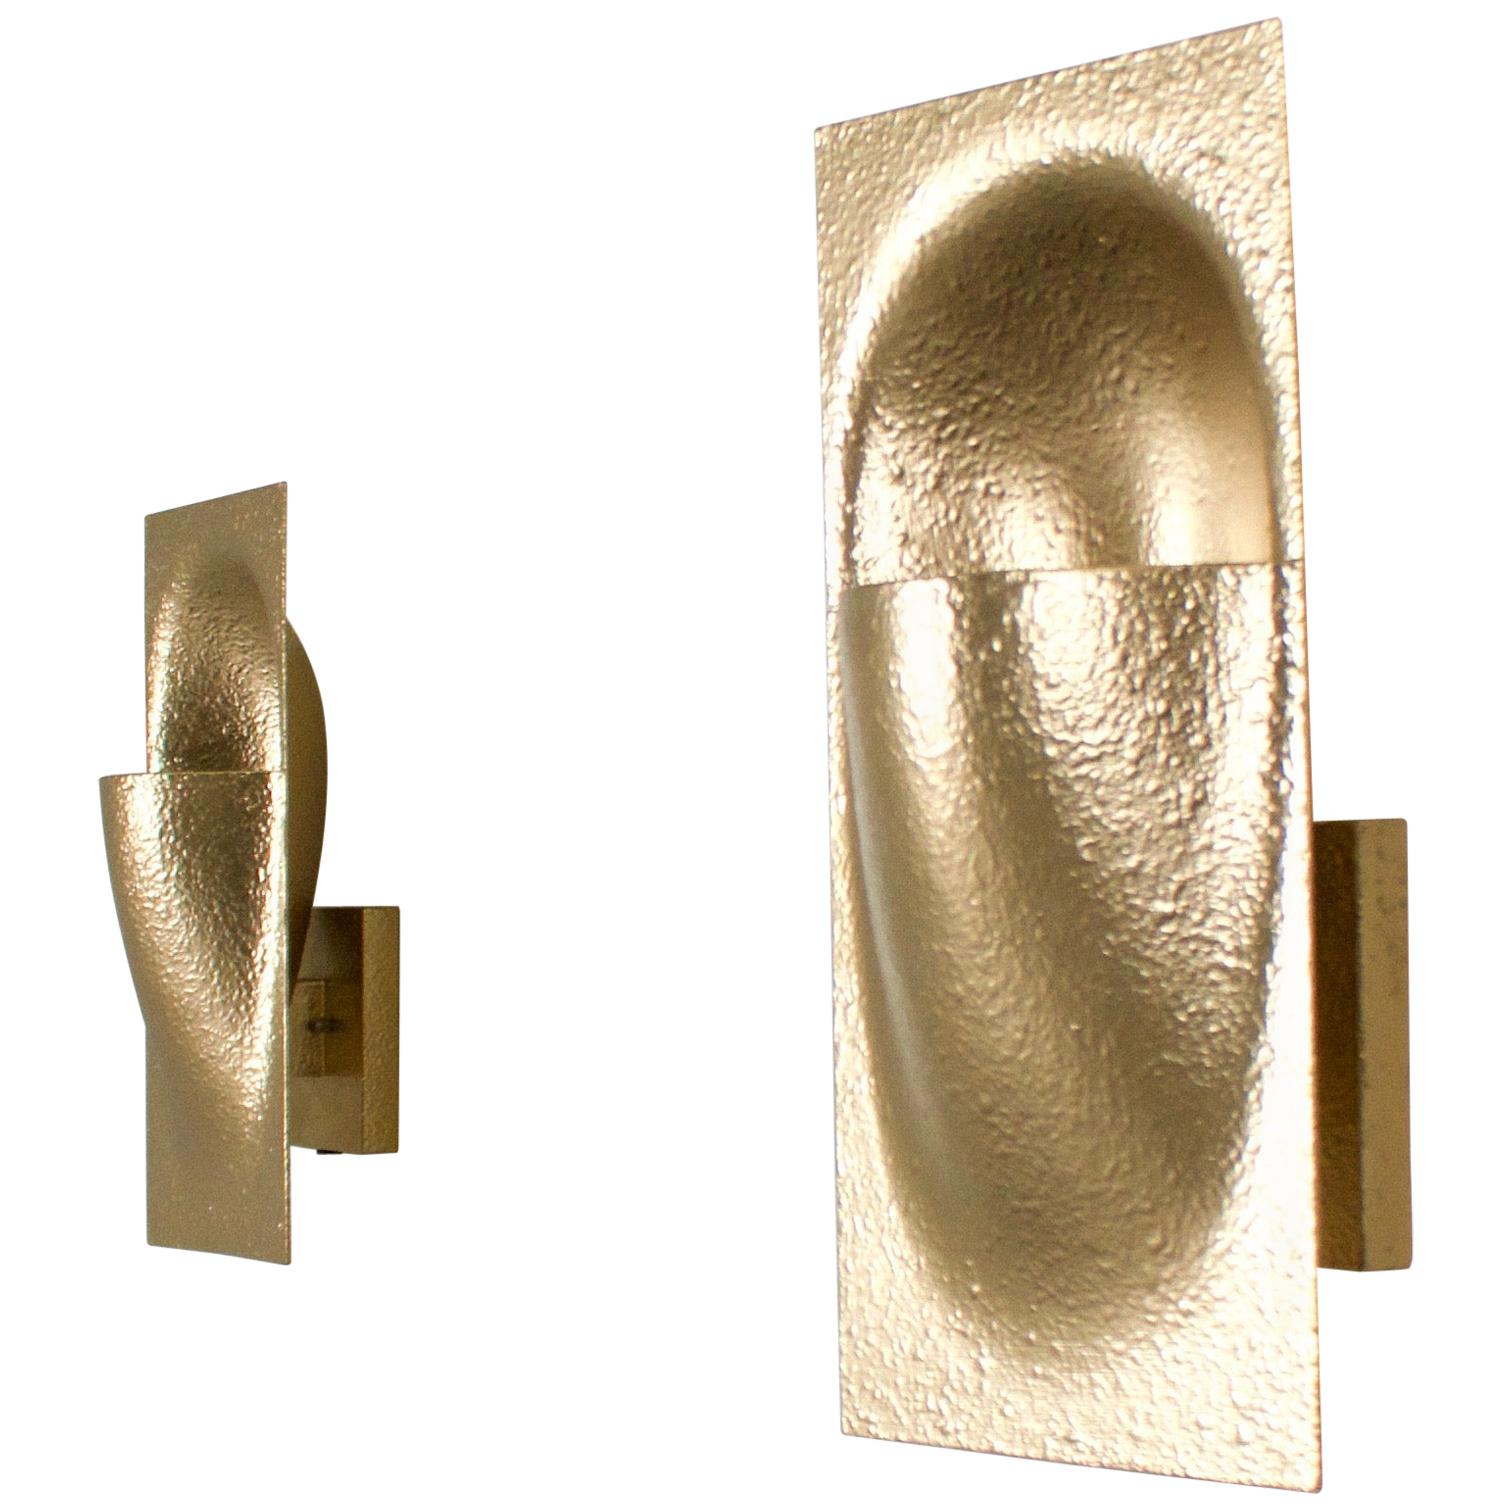 Gold Colored 'Balance' Sconces by Bertrand Balas for RAAK Amsterdam, 1972